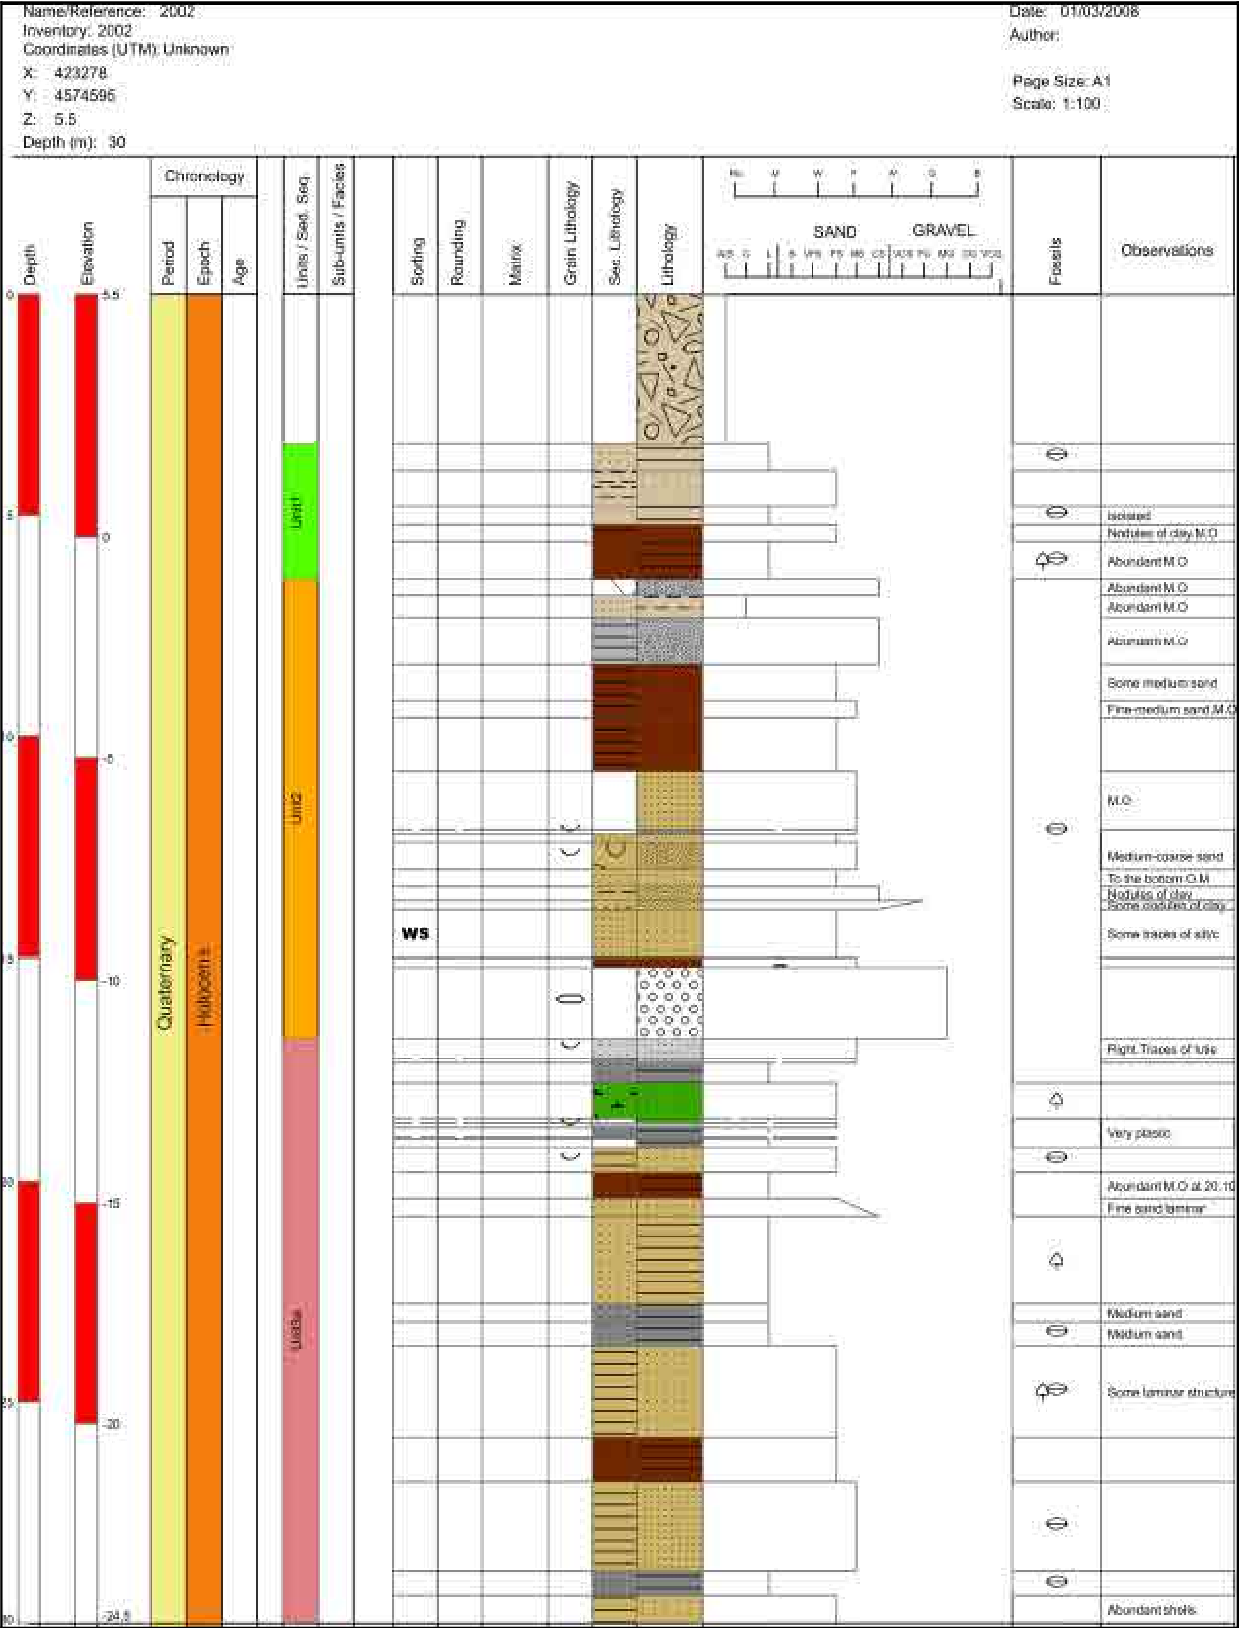 Figure 3.5. Result of the Borehole diagram query procedure. The lithology is defined by three components: Lithology (main litholgy), secondary lithology and matrix. The proportion between the secondary and the main lithology is represented by the column labelled as Proportion, where W=with (same proportion of main and secondary lithology), F=frequent, S=some and T=traces